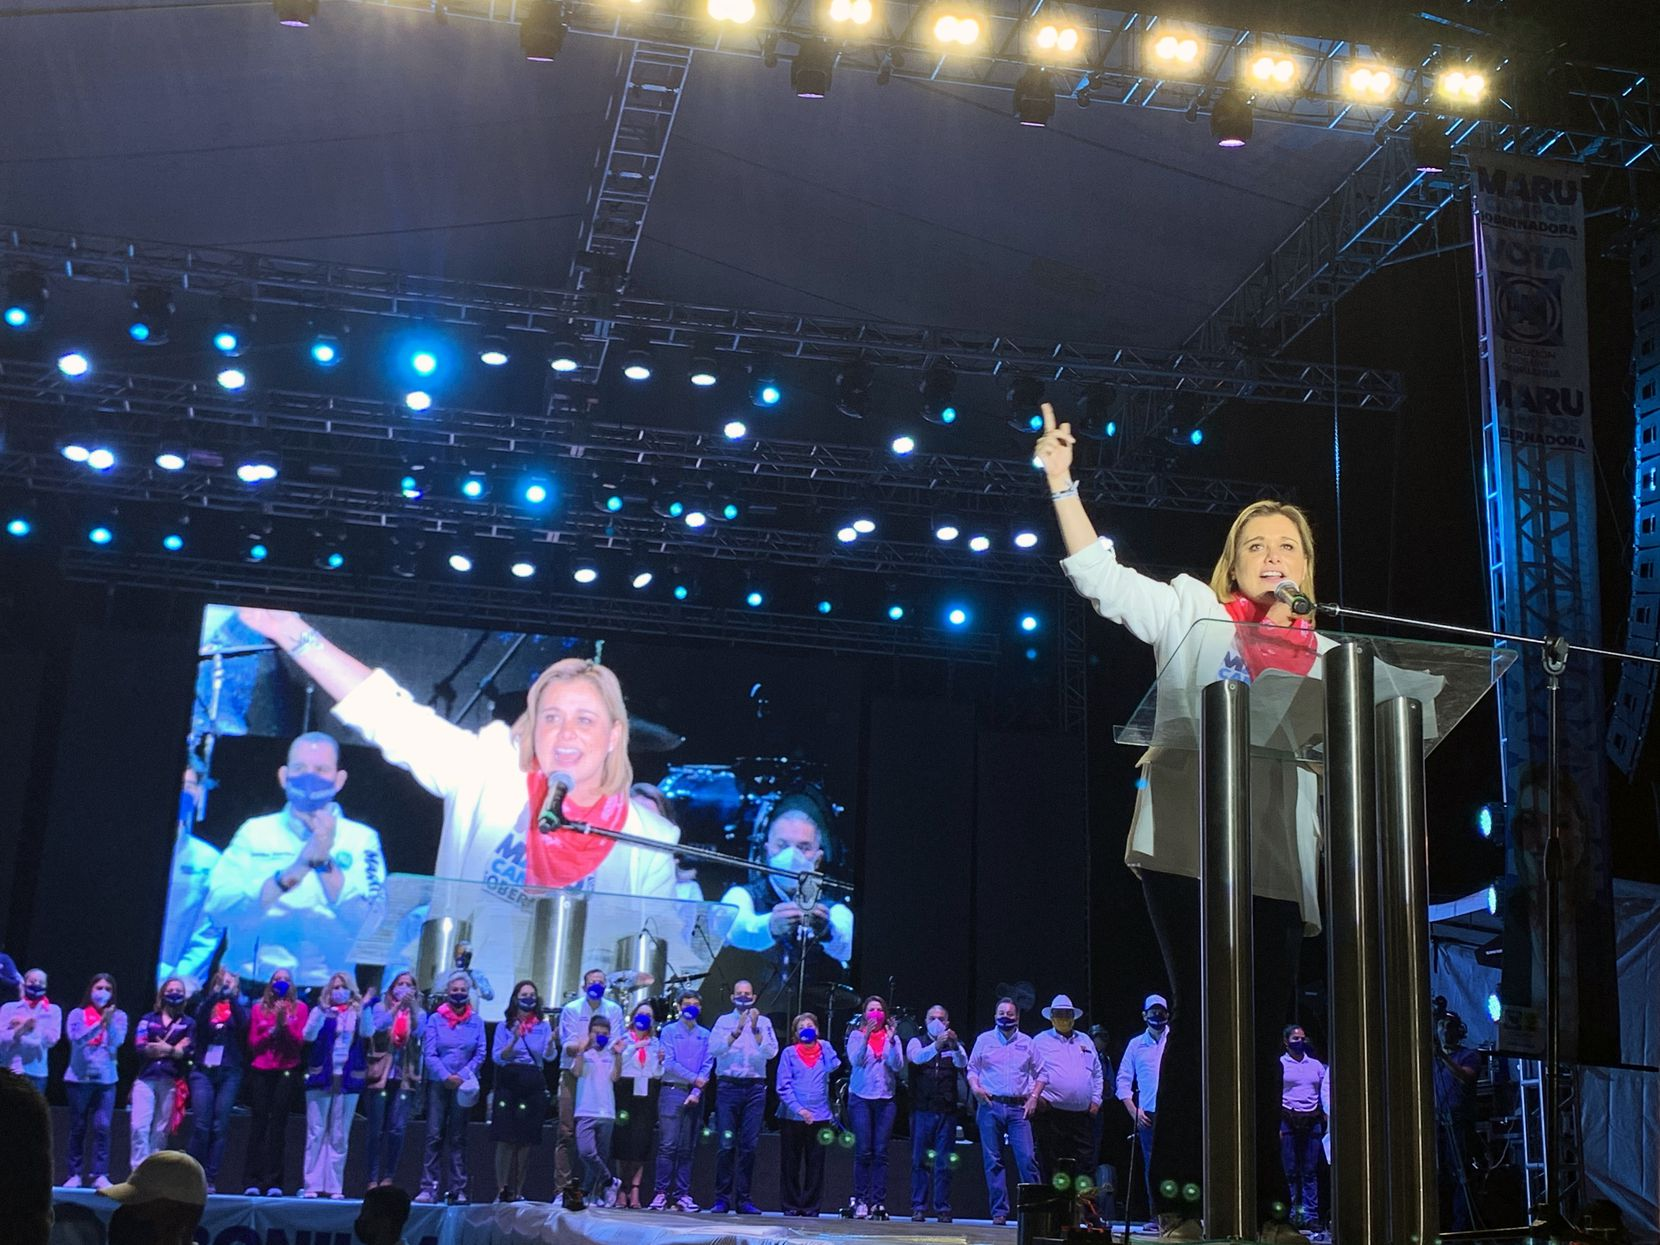 María Eugenia Campos Galvan, known as Maru, at a May 28 rally. She will be the new governor of Mexico's Chihuahua state.